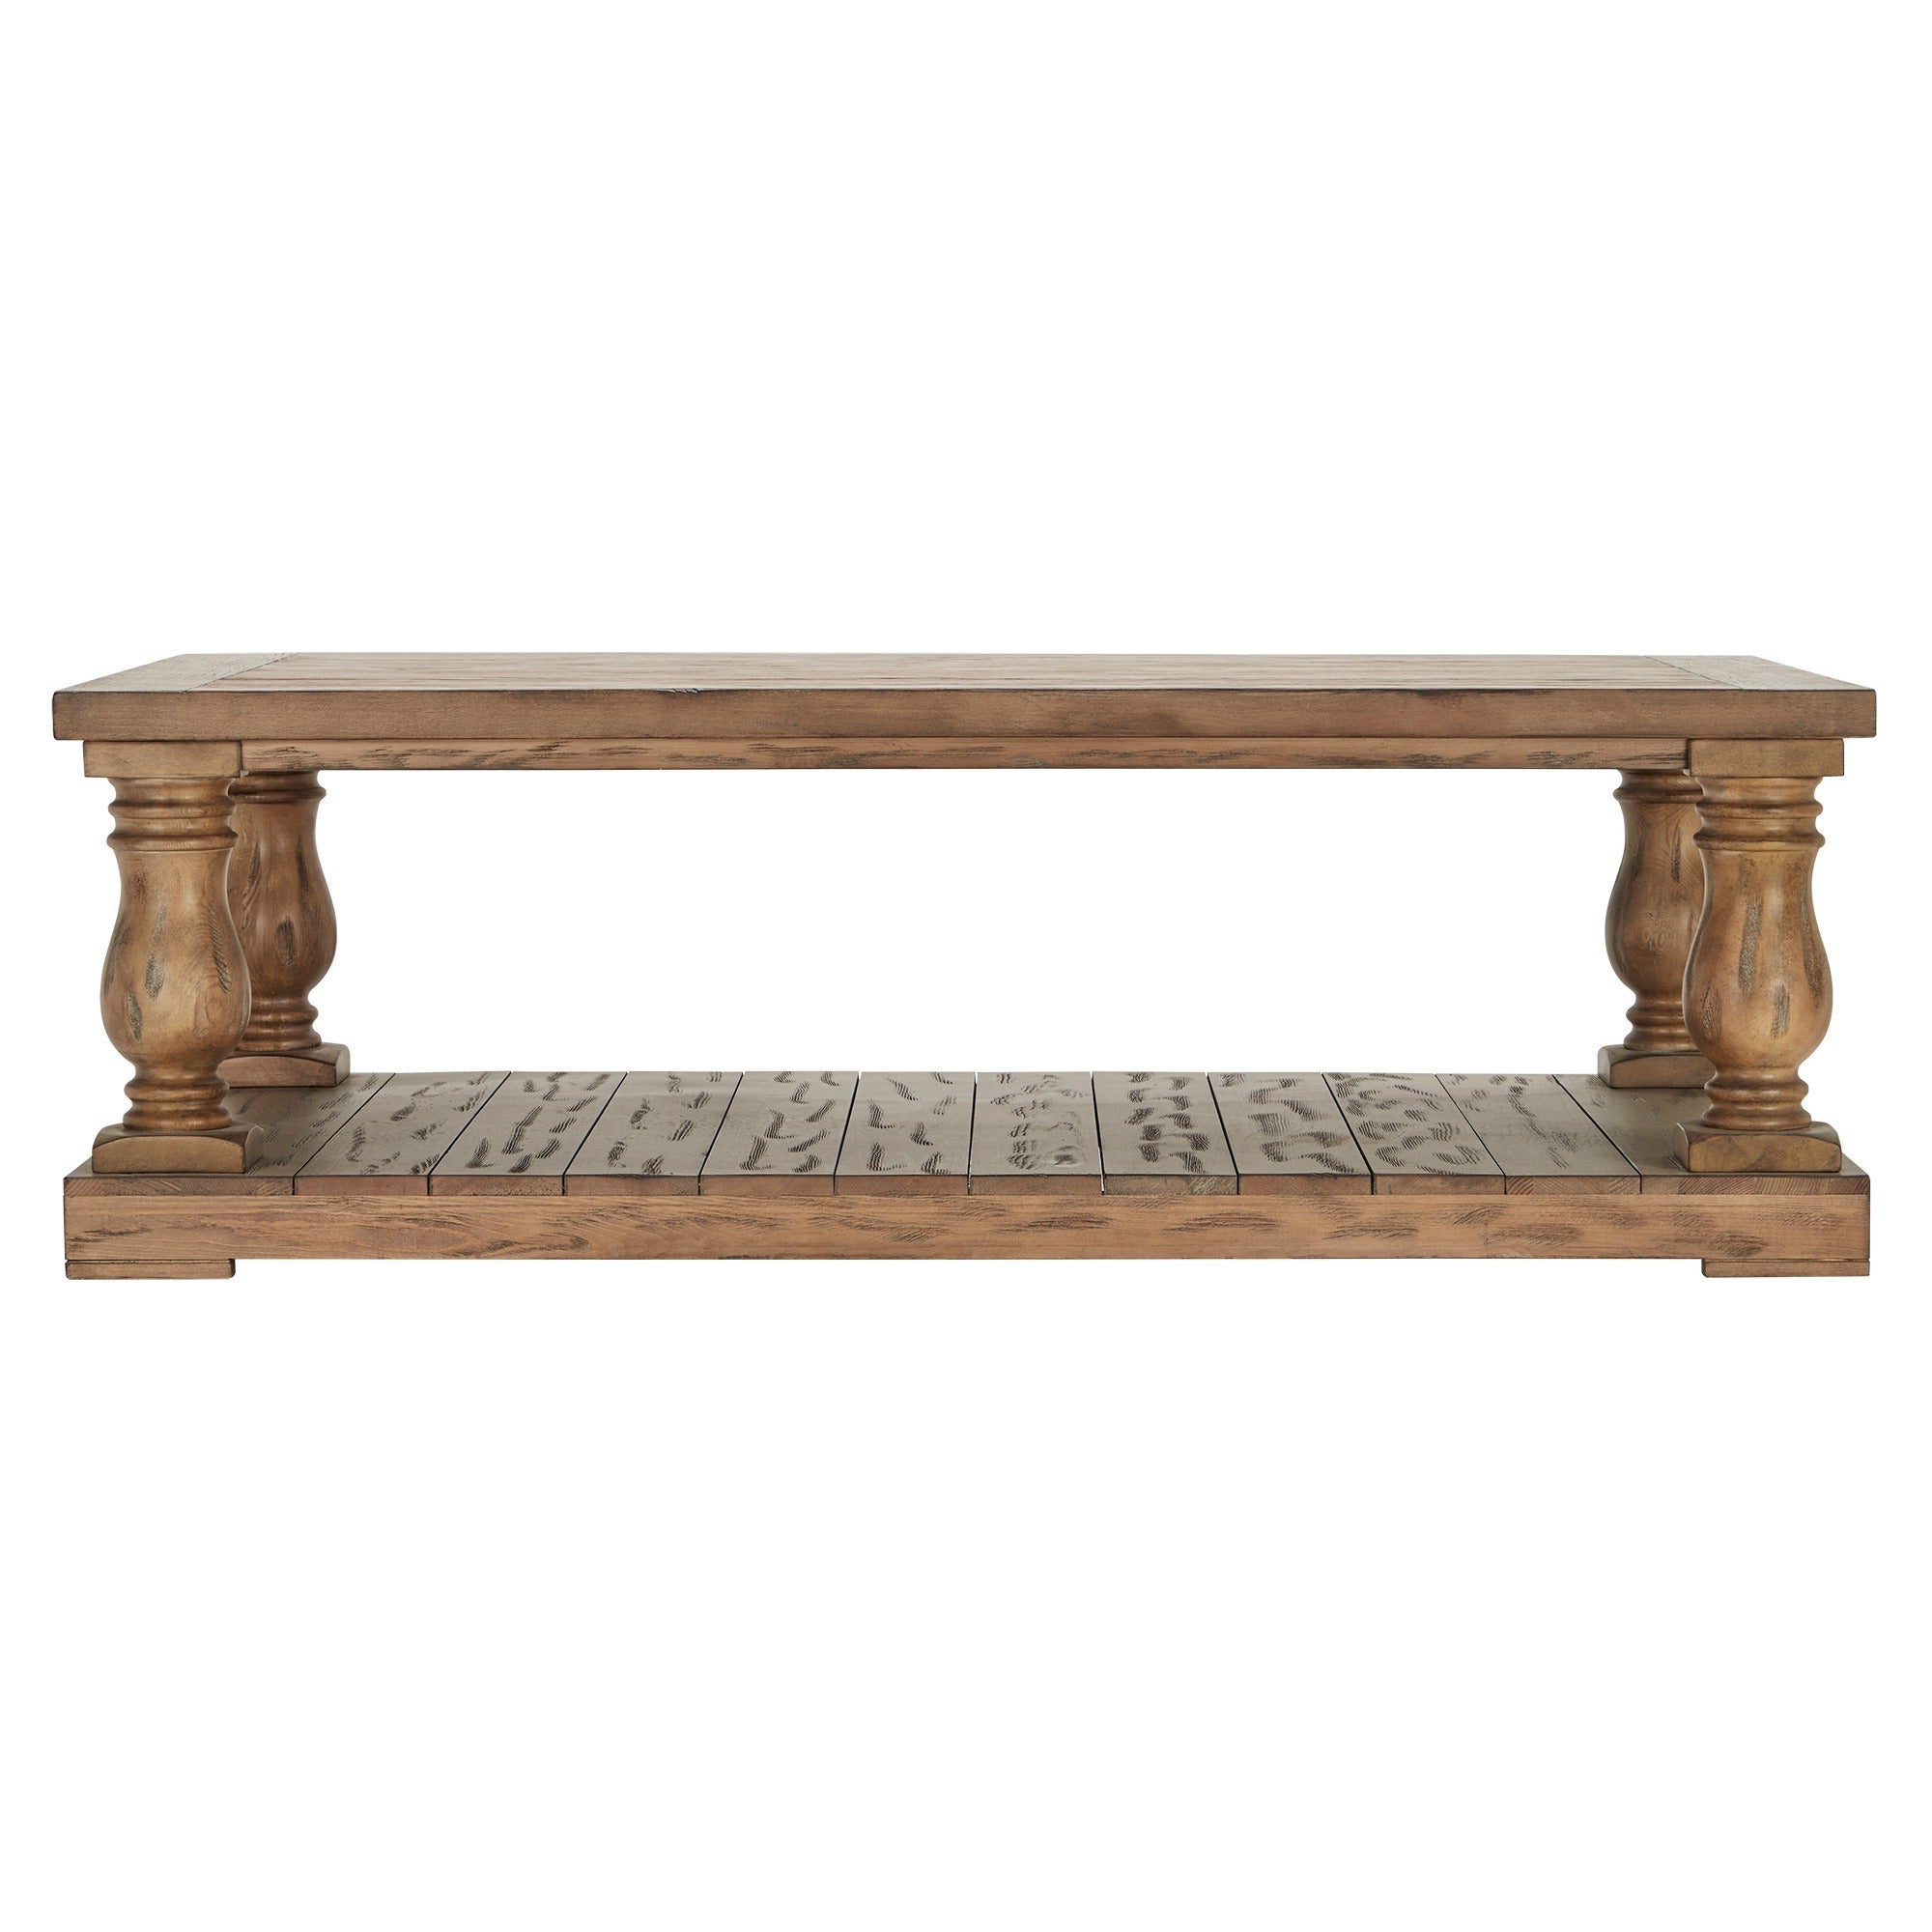 Edmaire Rustic Pine Baluster 55 Inch Coffee Tableinspire Q Artisan With Newest Edmaire Rustic Pine Baluster Coffee Tables (View 8 of 20)